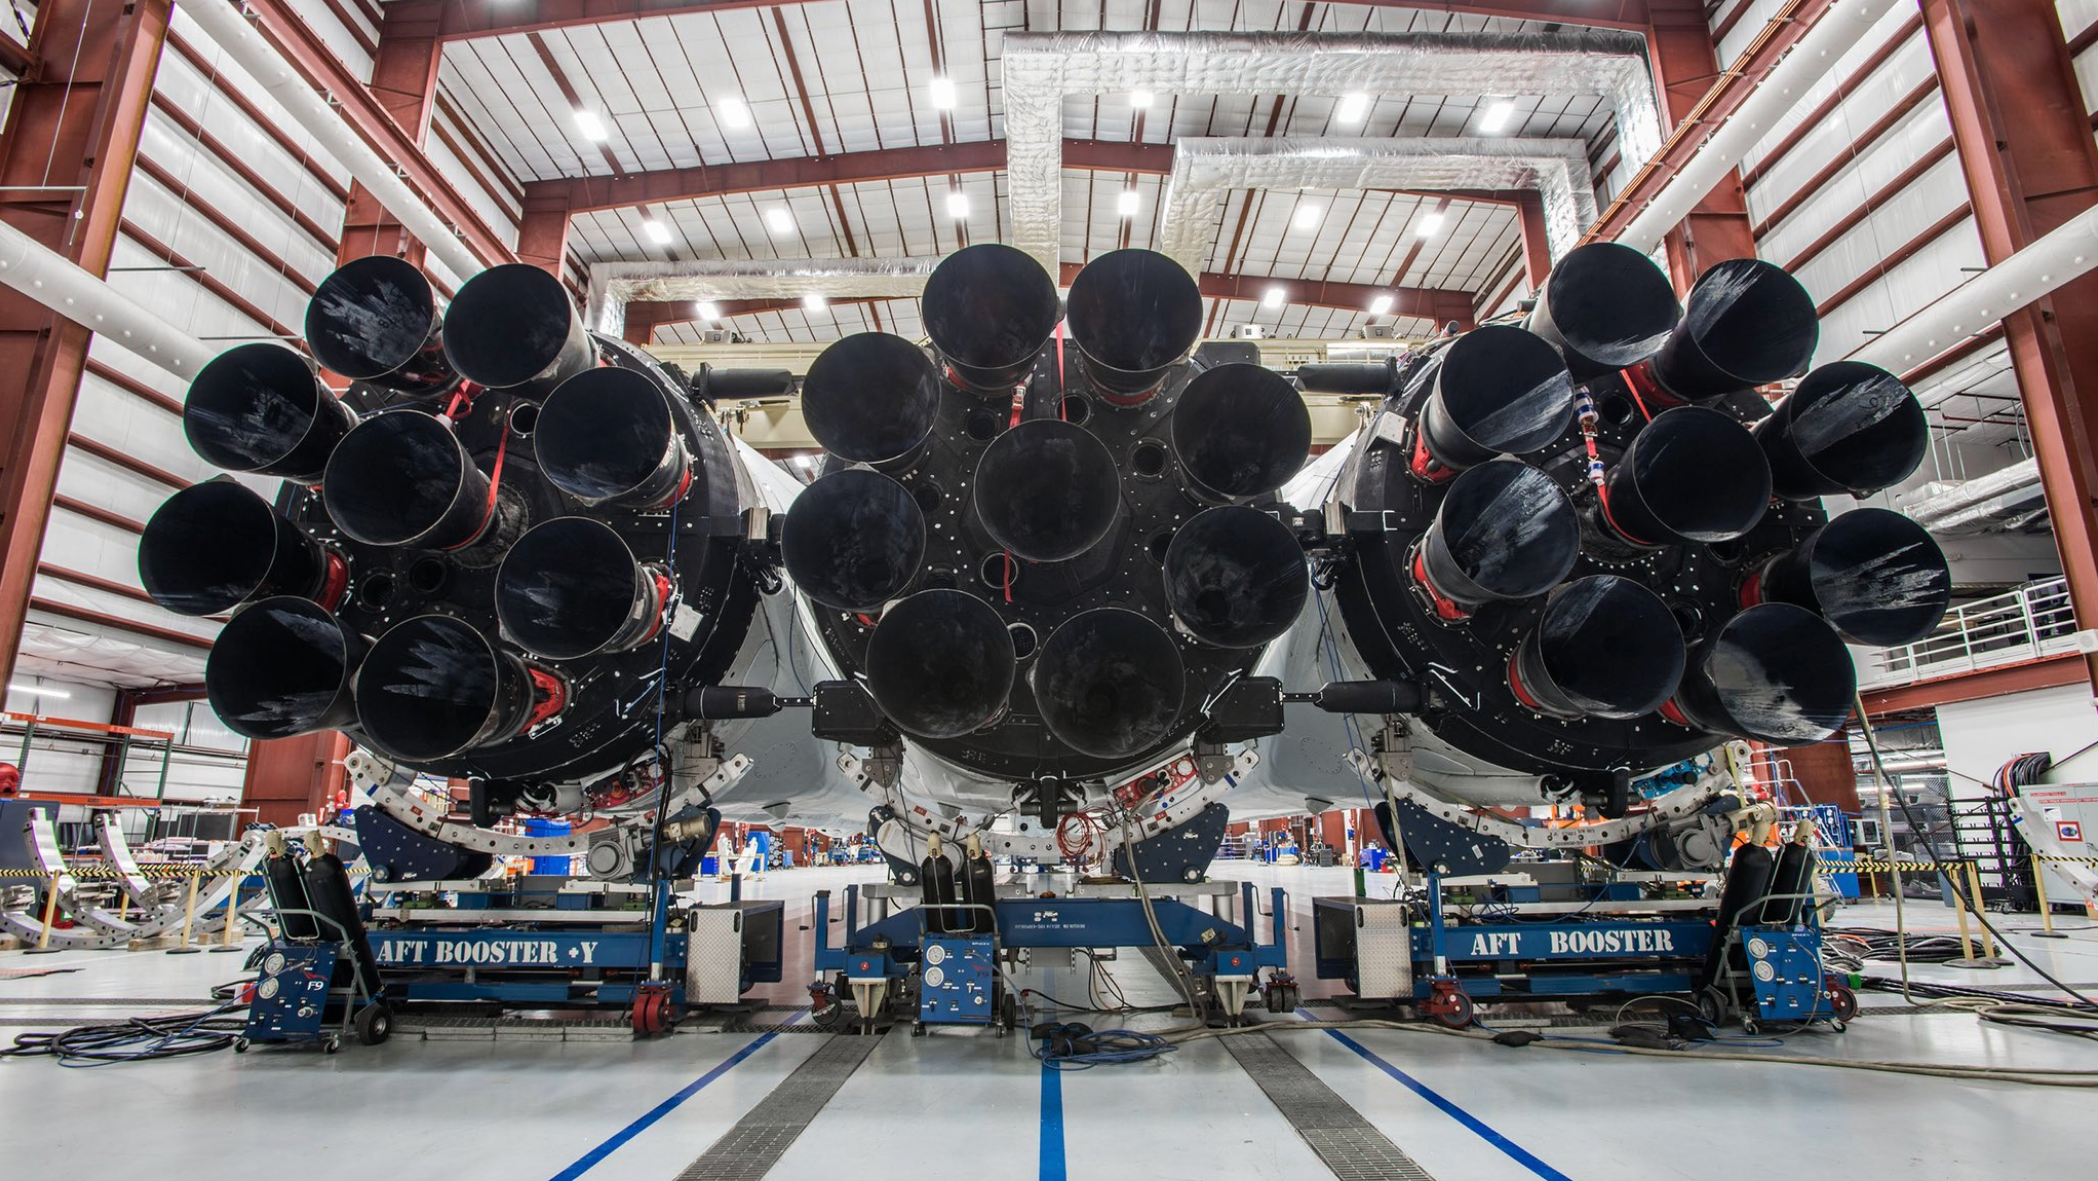 Here's how you can get a job working for Elon Musk's SpaceX